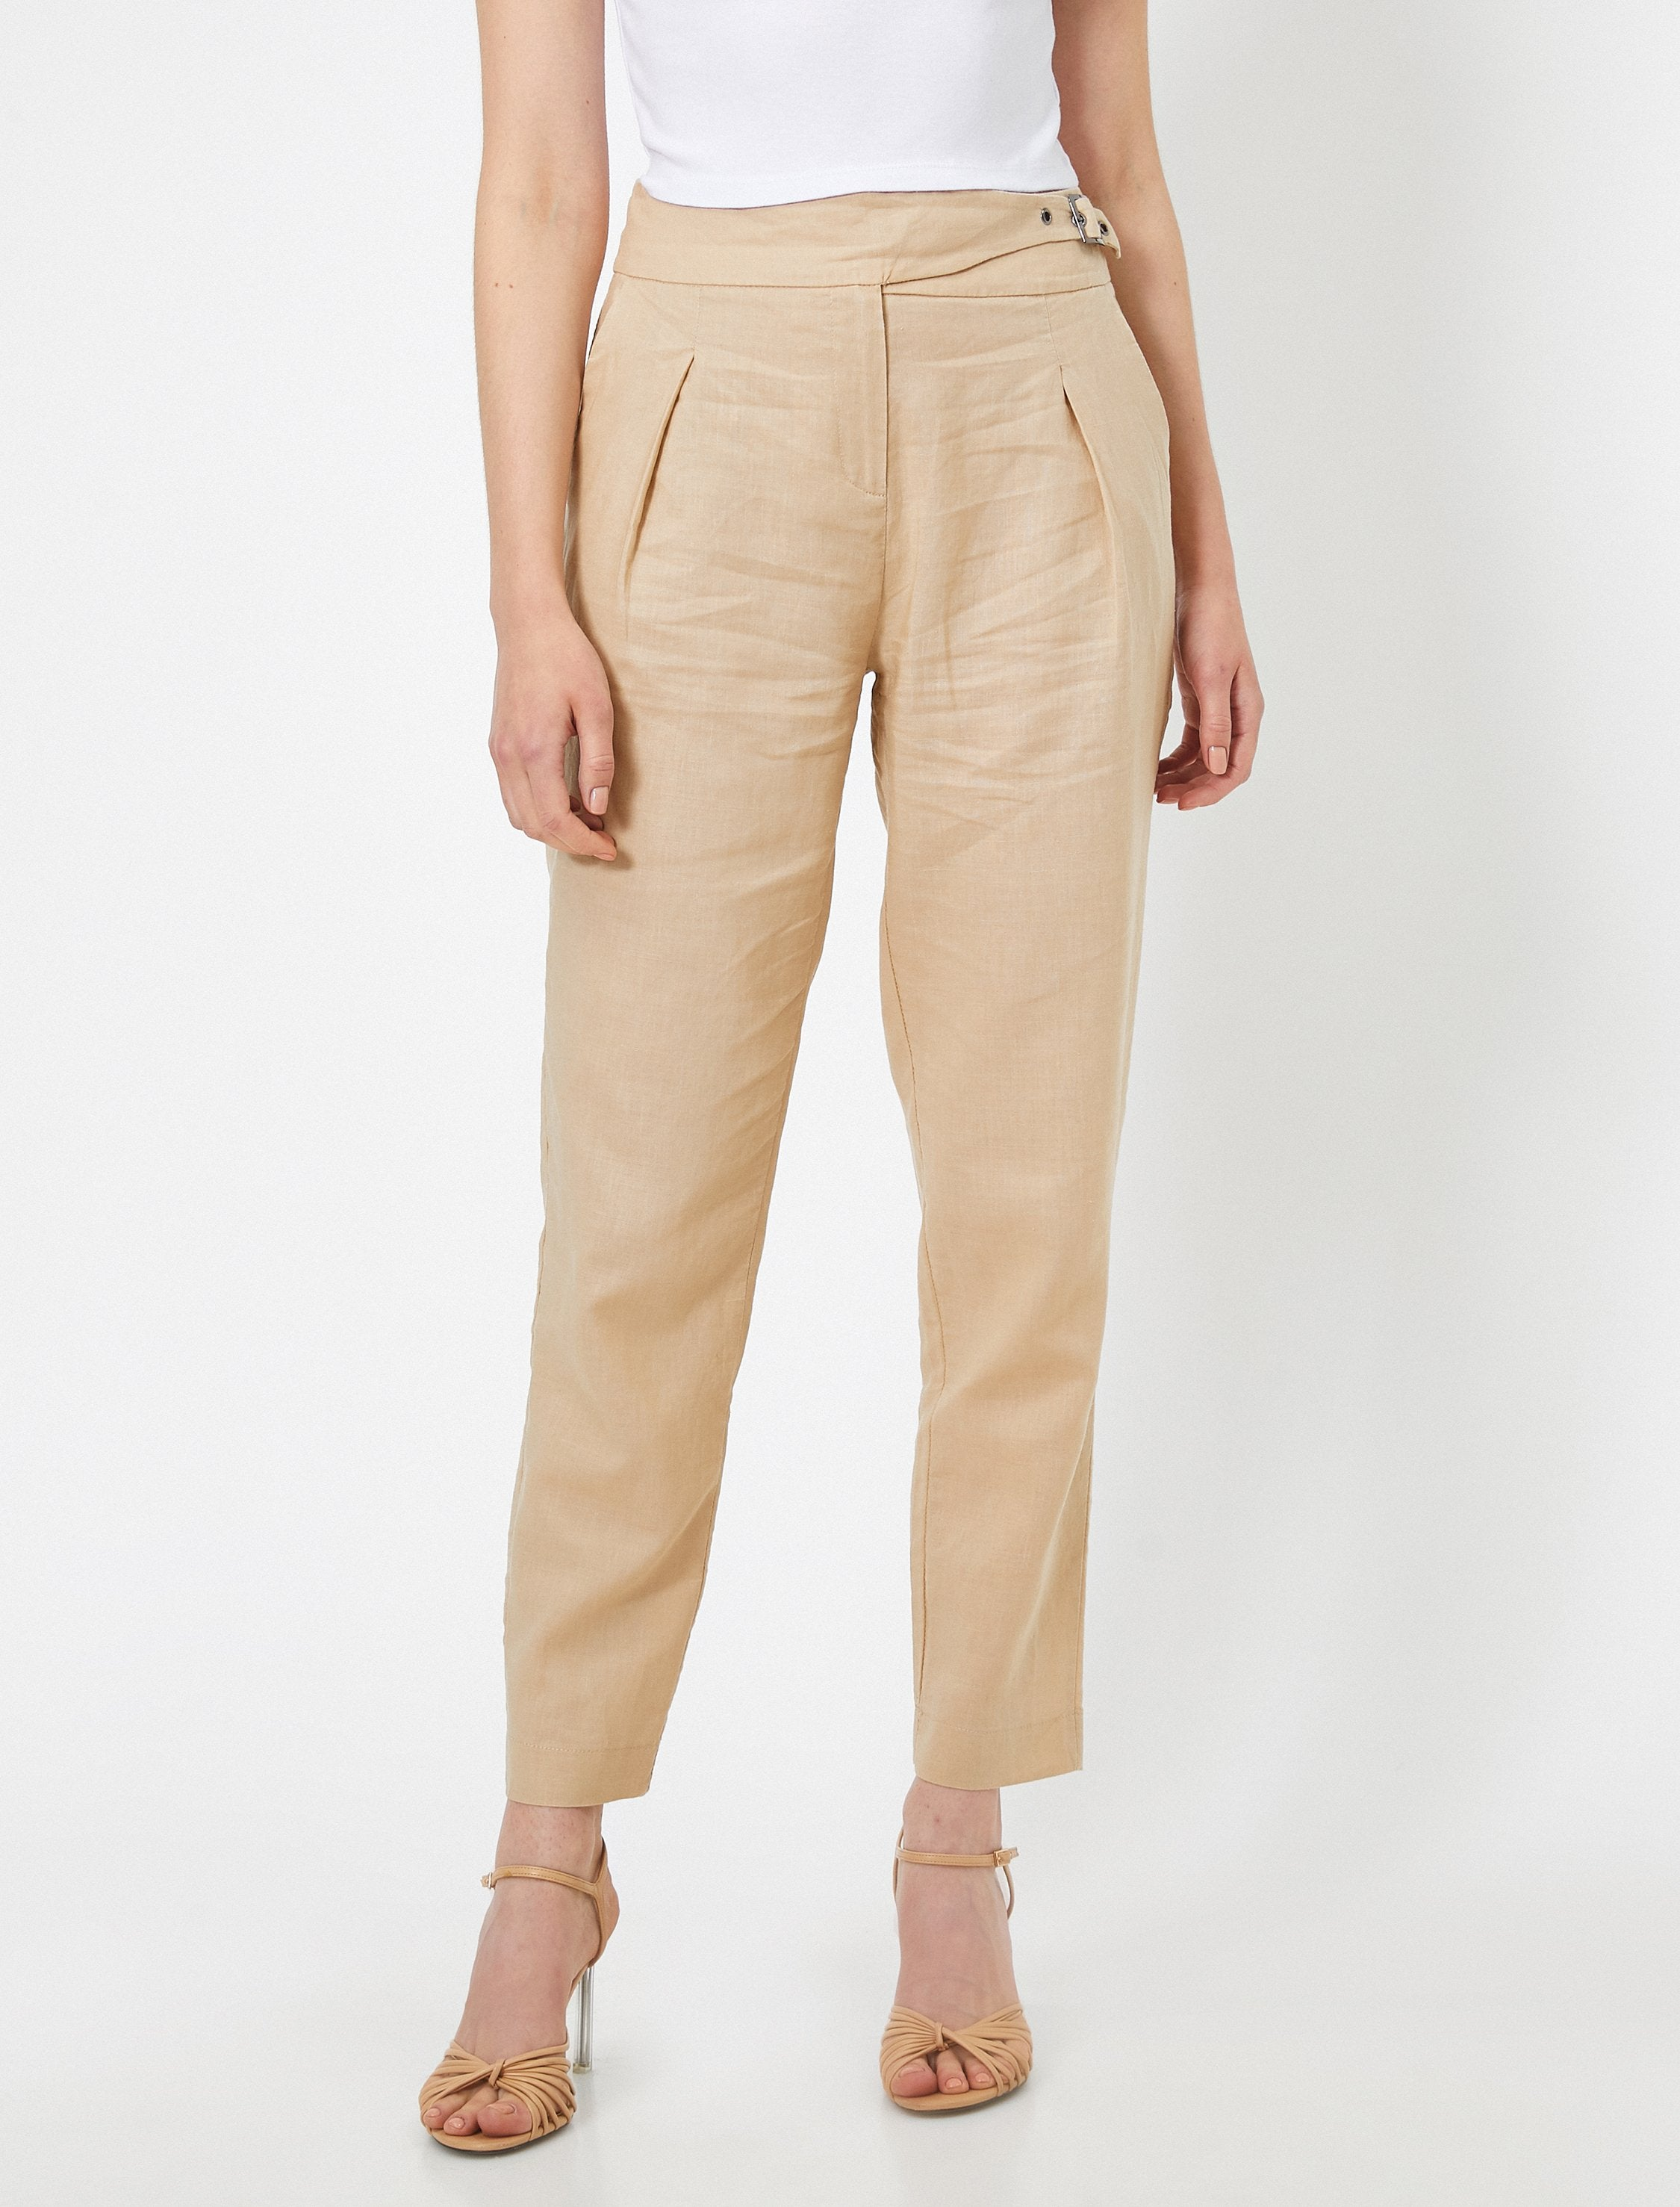 Natural Look Carrot Pant in Camel